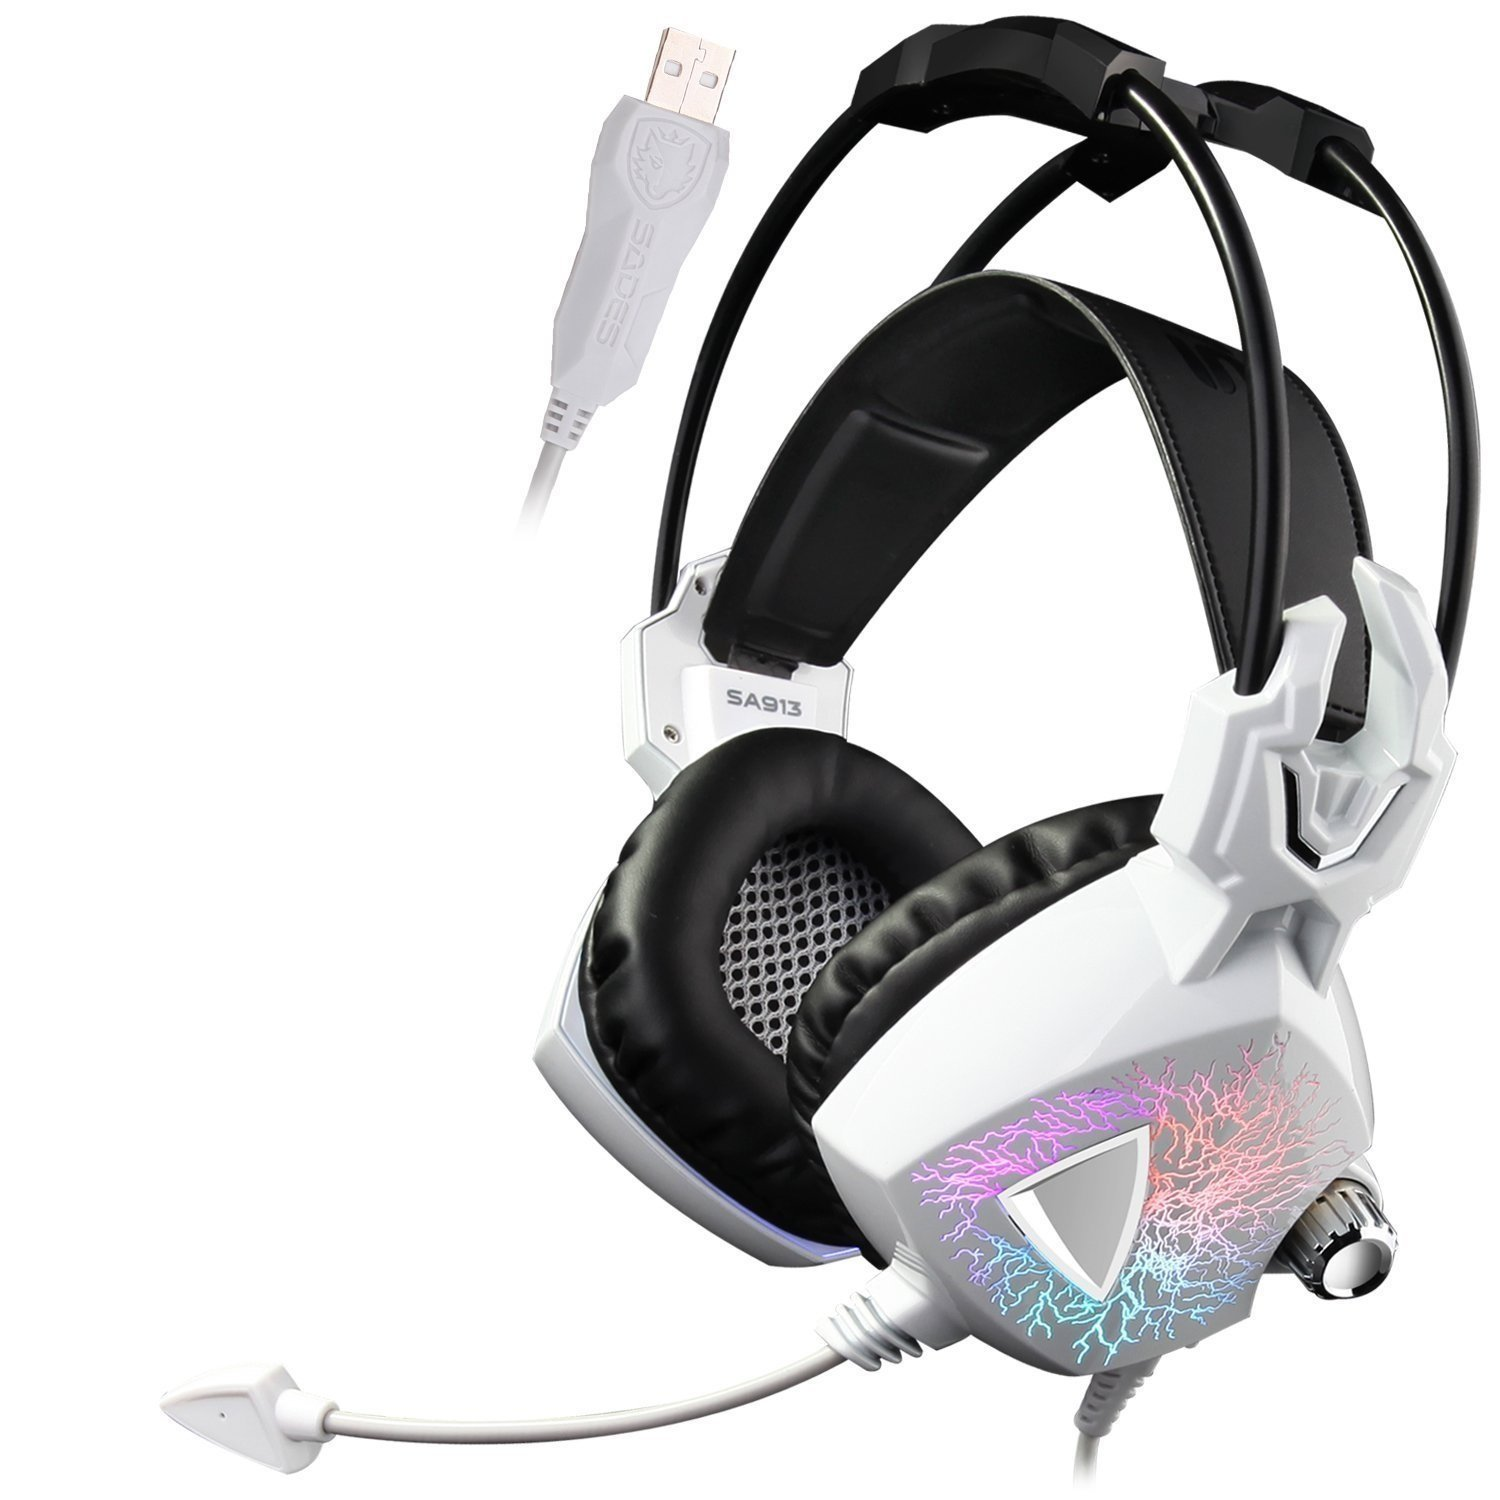 Sades Surround Sound Headset Stereo Over Ear Headphones with Microphone (White)